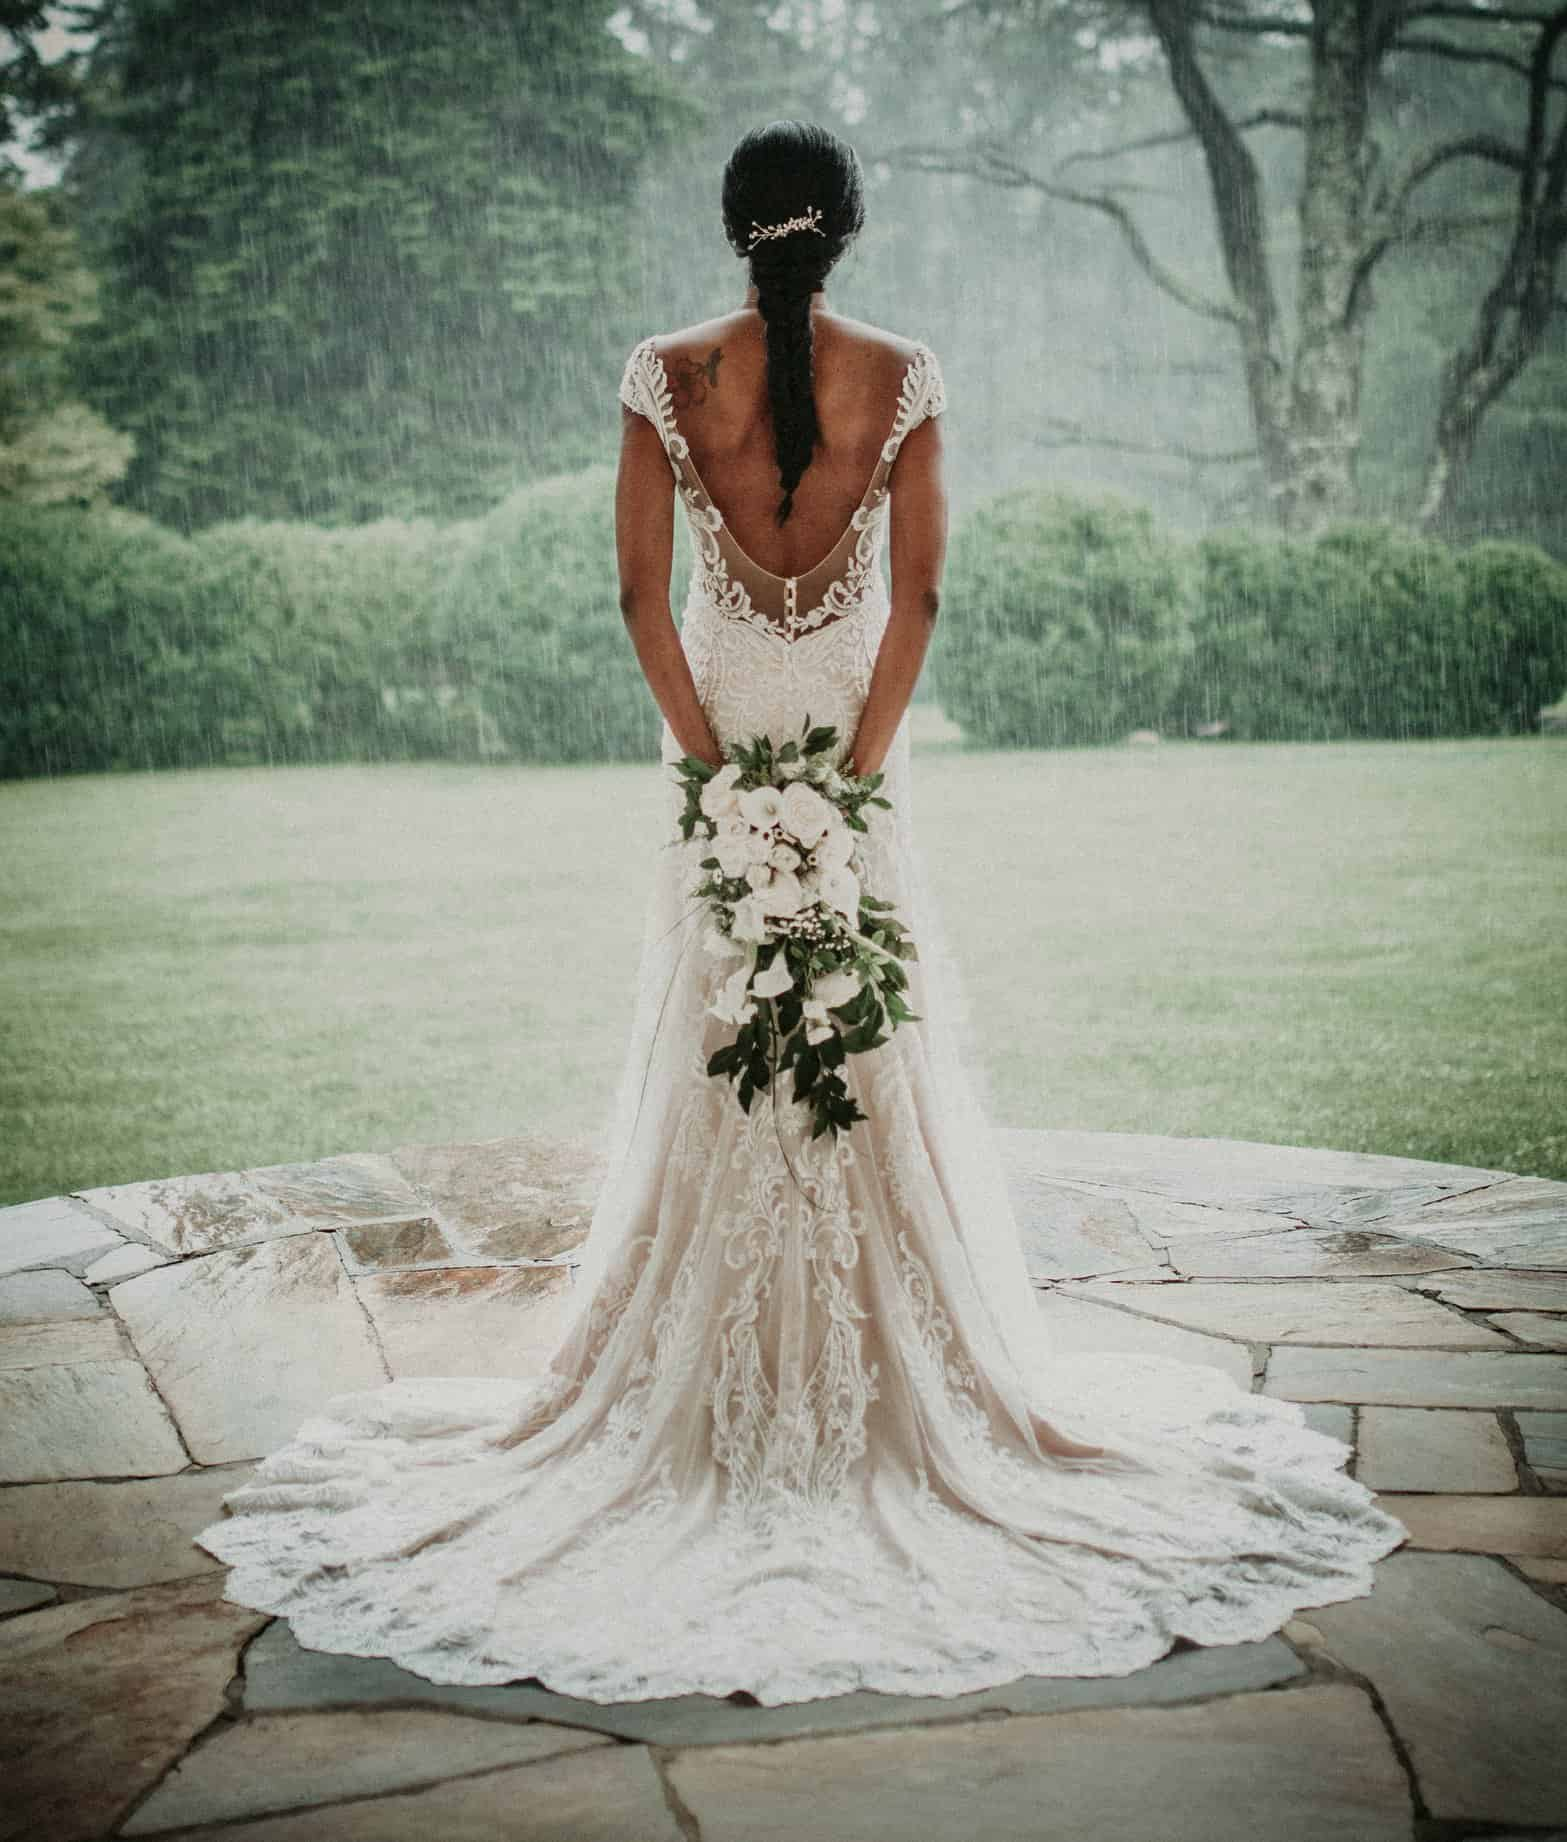 Wedding Dress Ideas: 27 Magical Bridal Dresses You Need